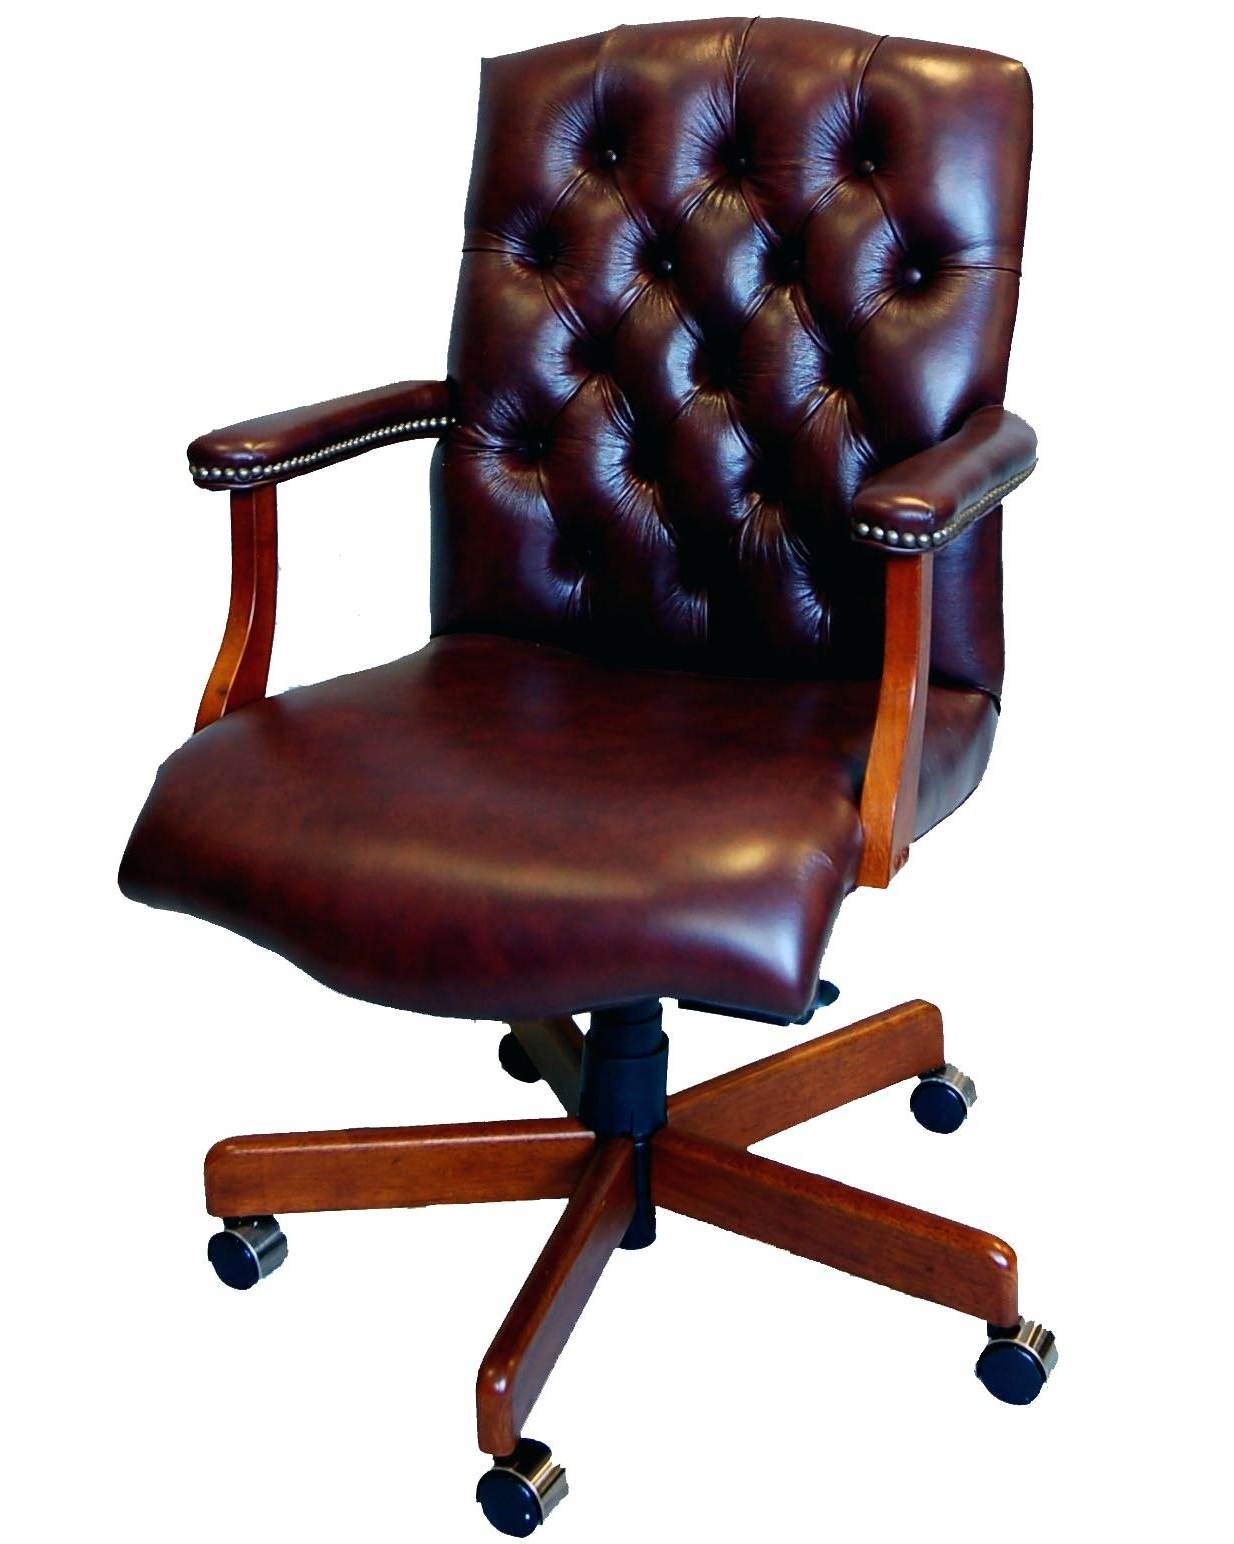 Verona Executive Leather Office Chairs Pertaining To Widely Used Articles With Verona Cream Executive Leather Office Chairs Label (View 11 of 20)